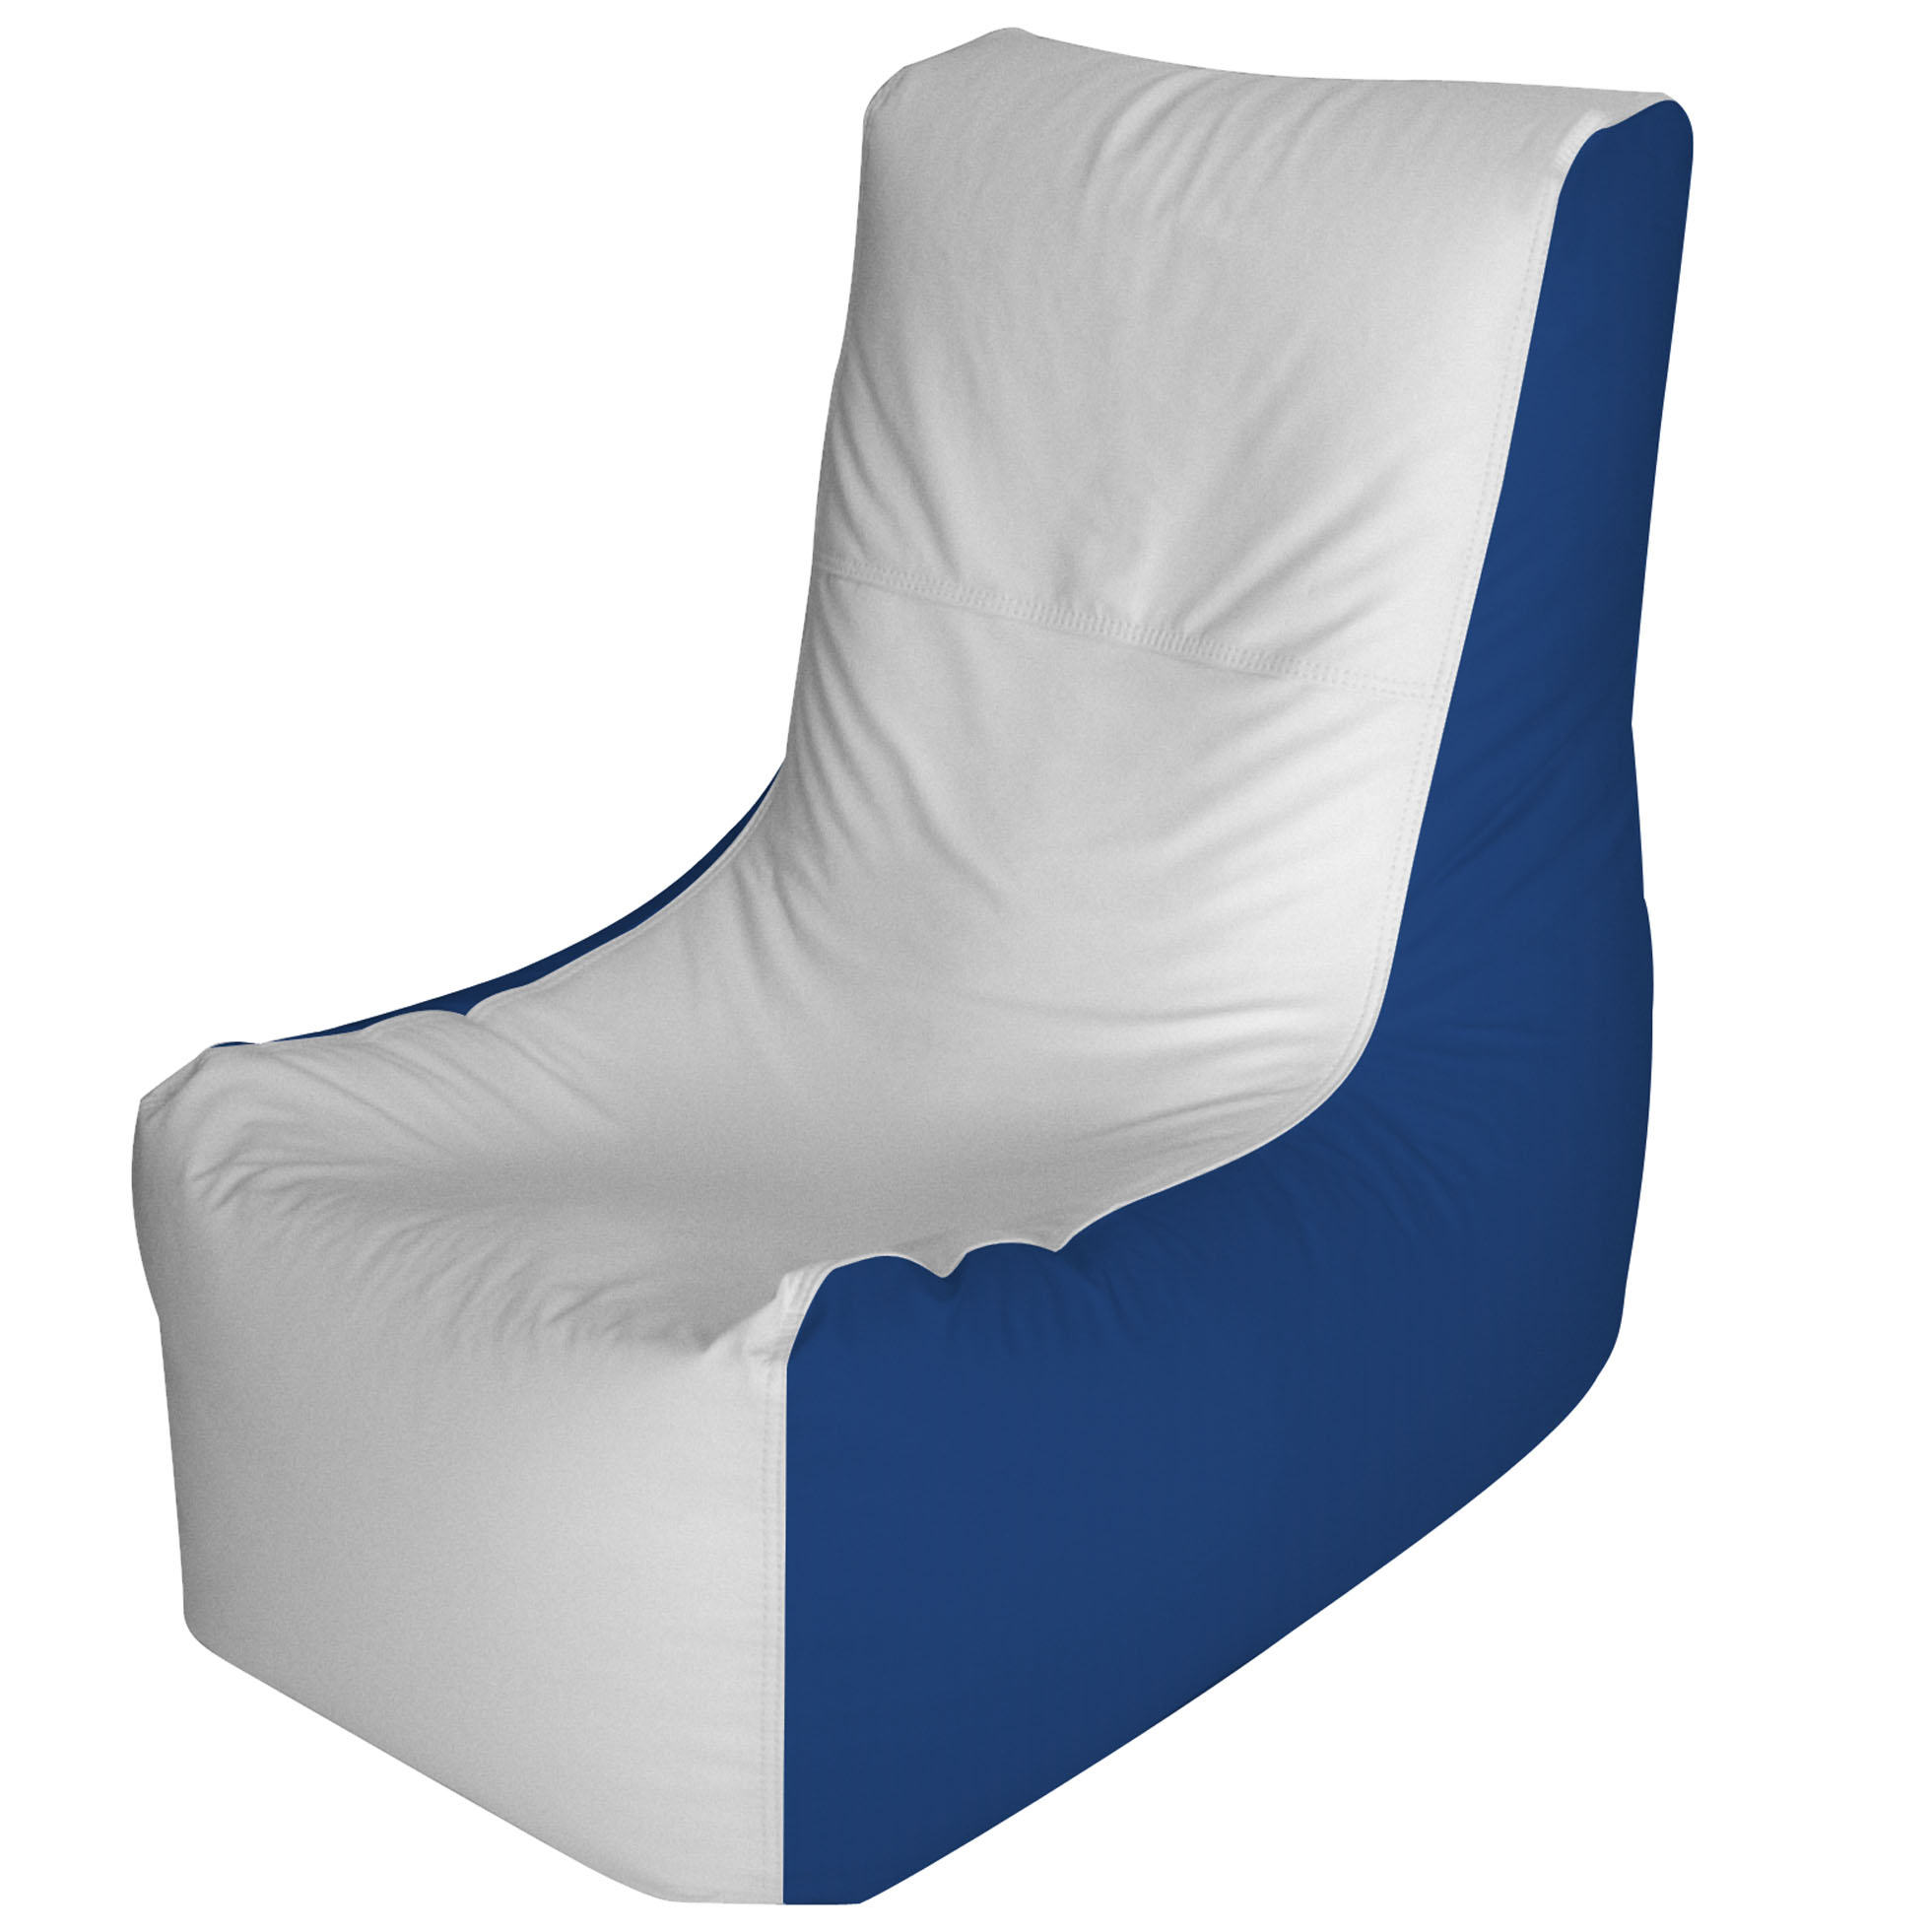 Wedge Style Marine Bean Bag Small